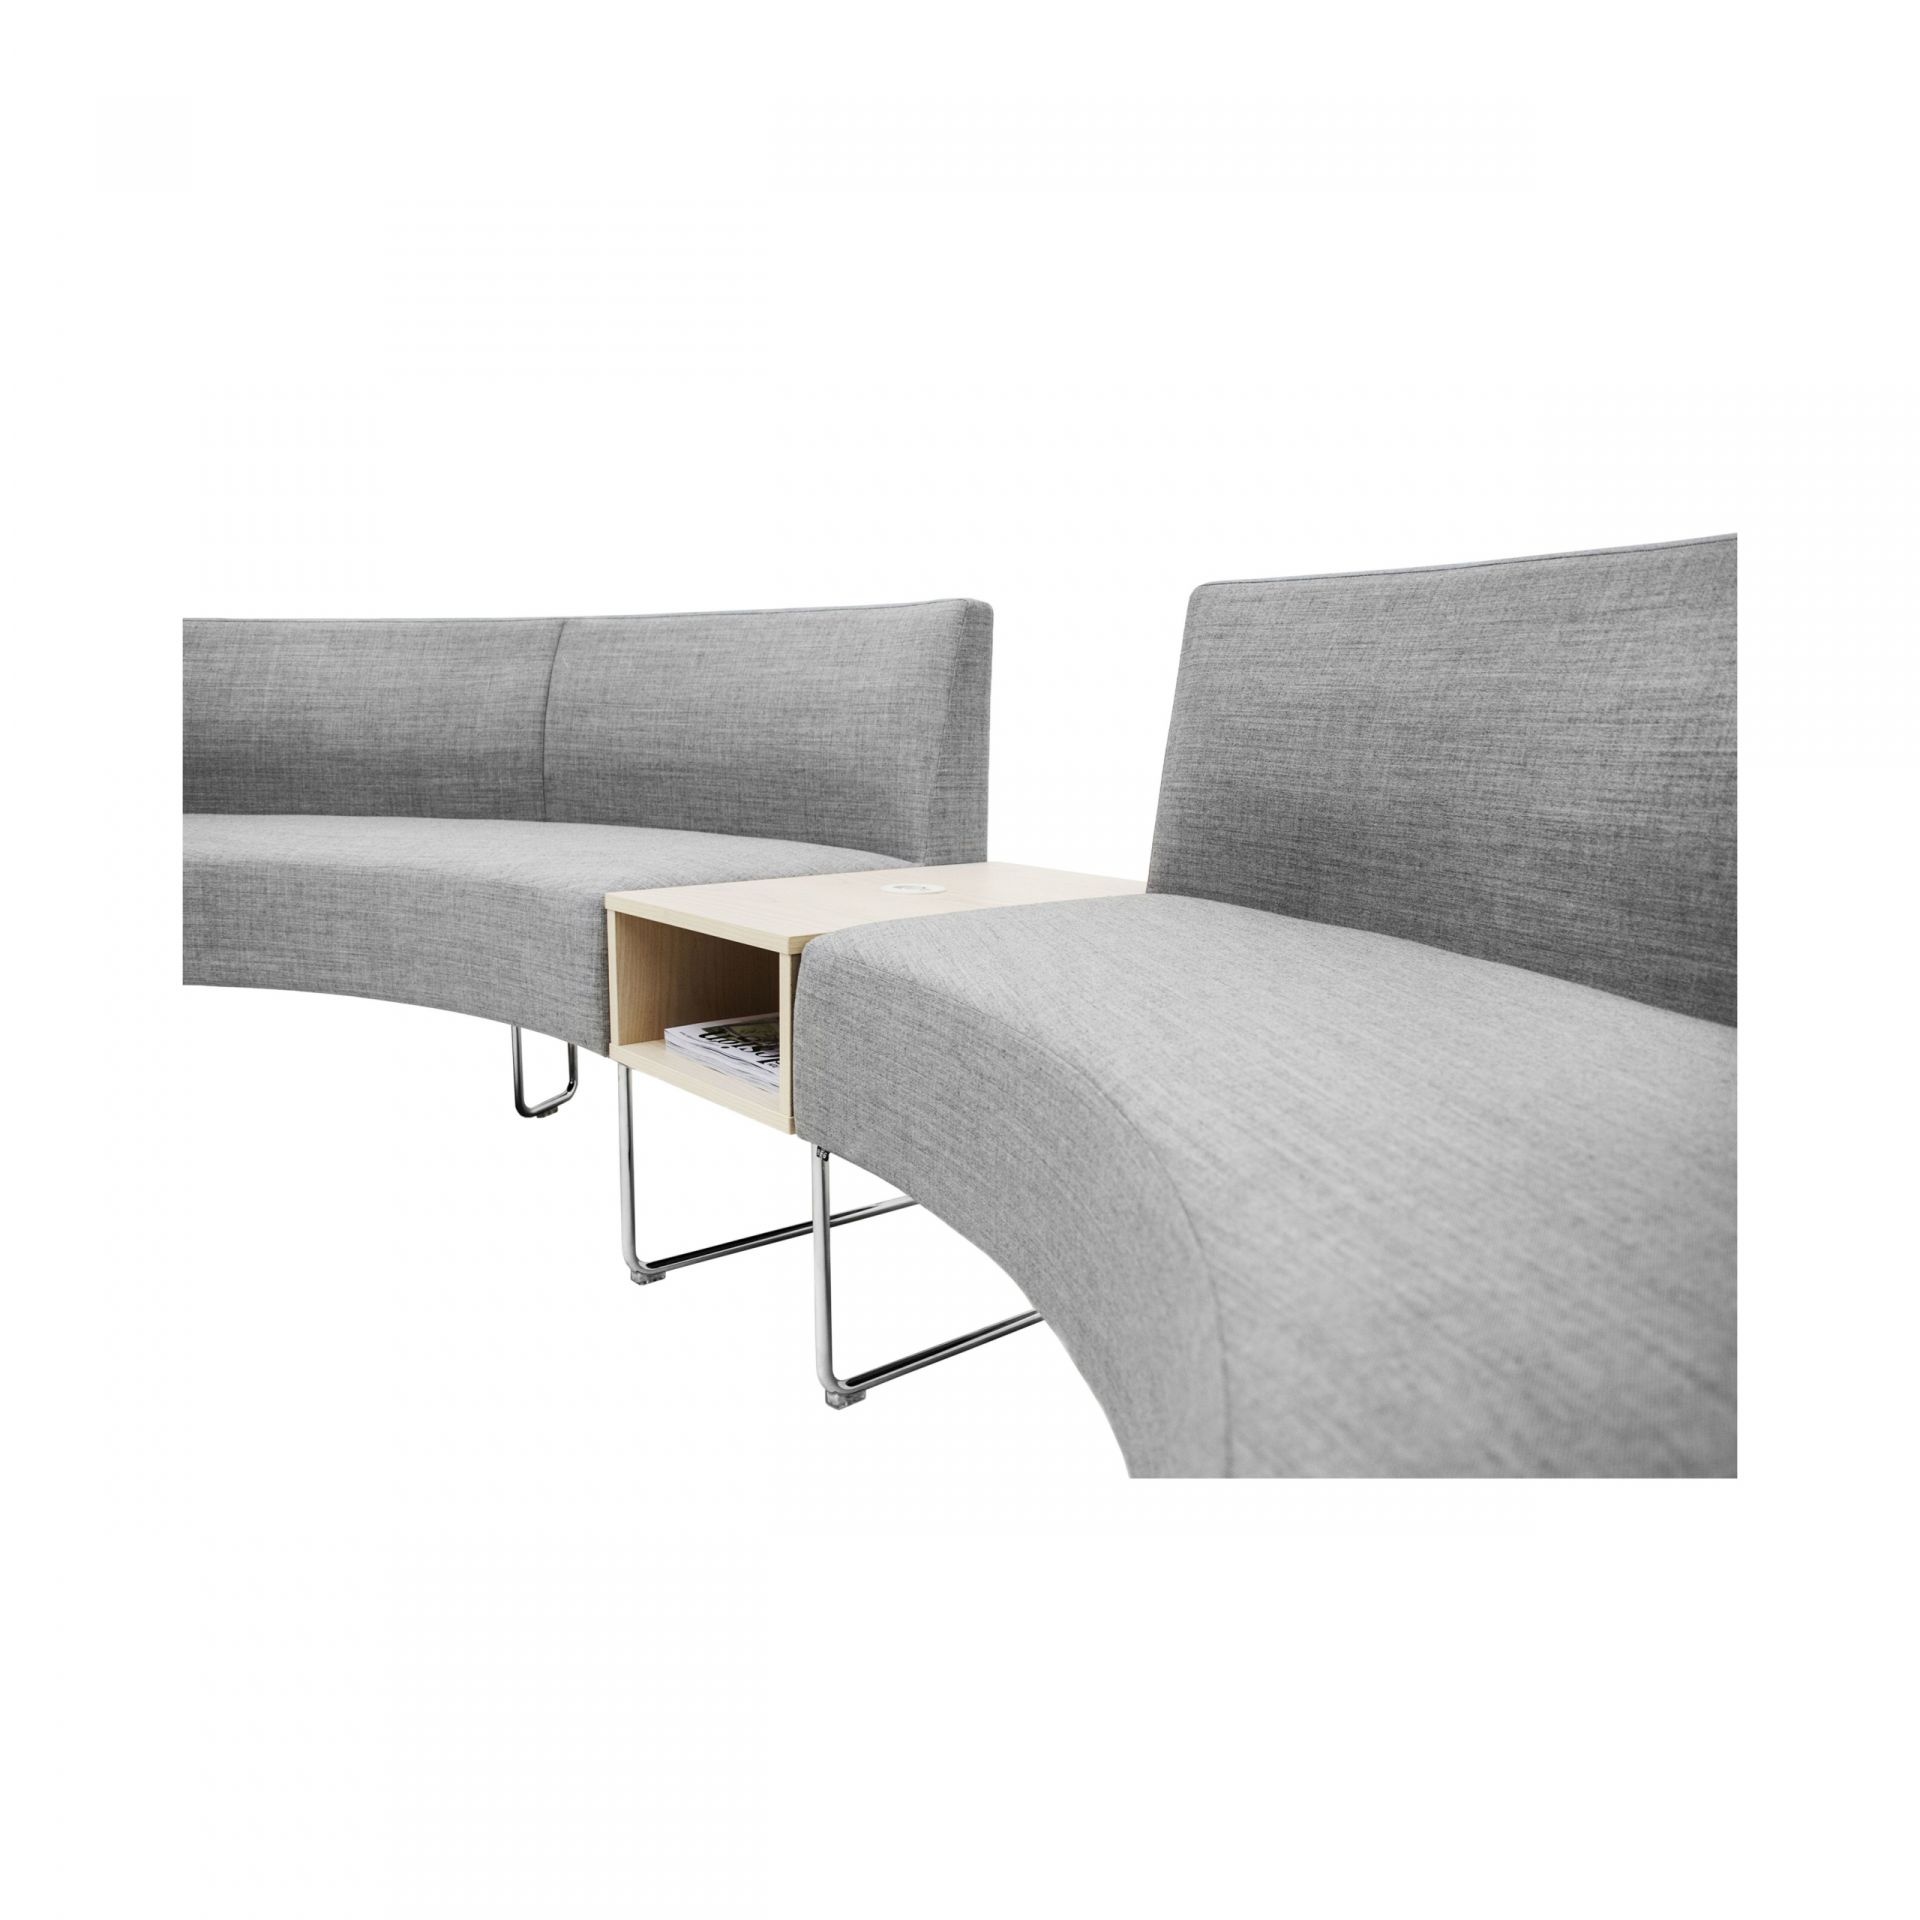 Mingle Buildable seating modules product image 3